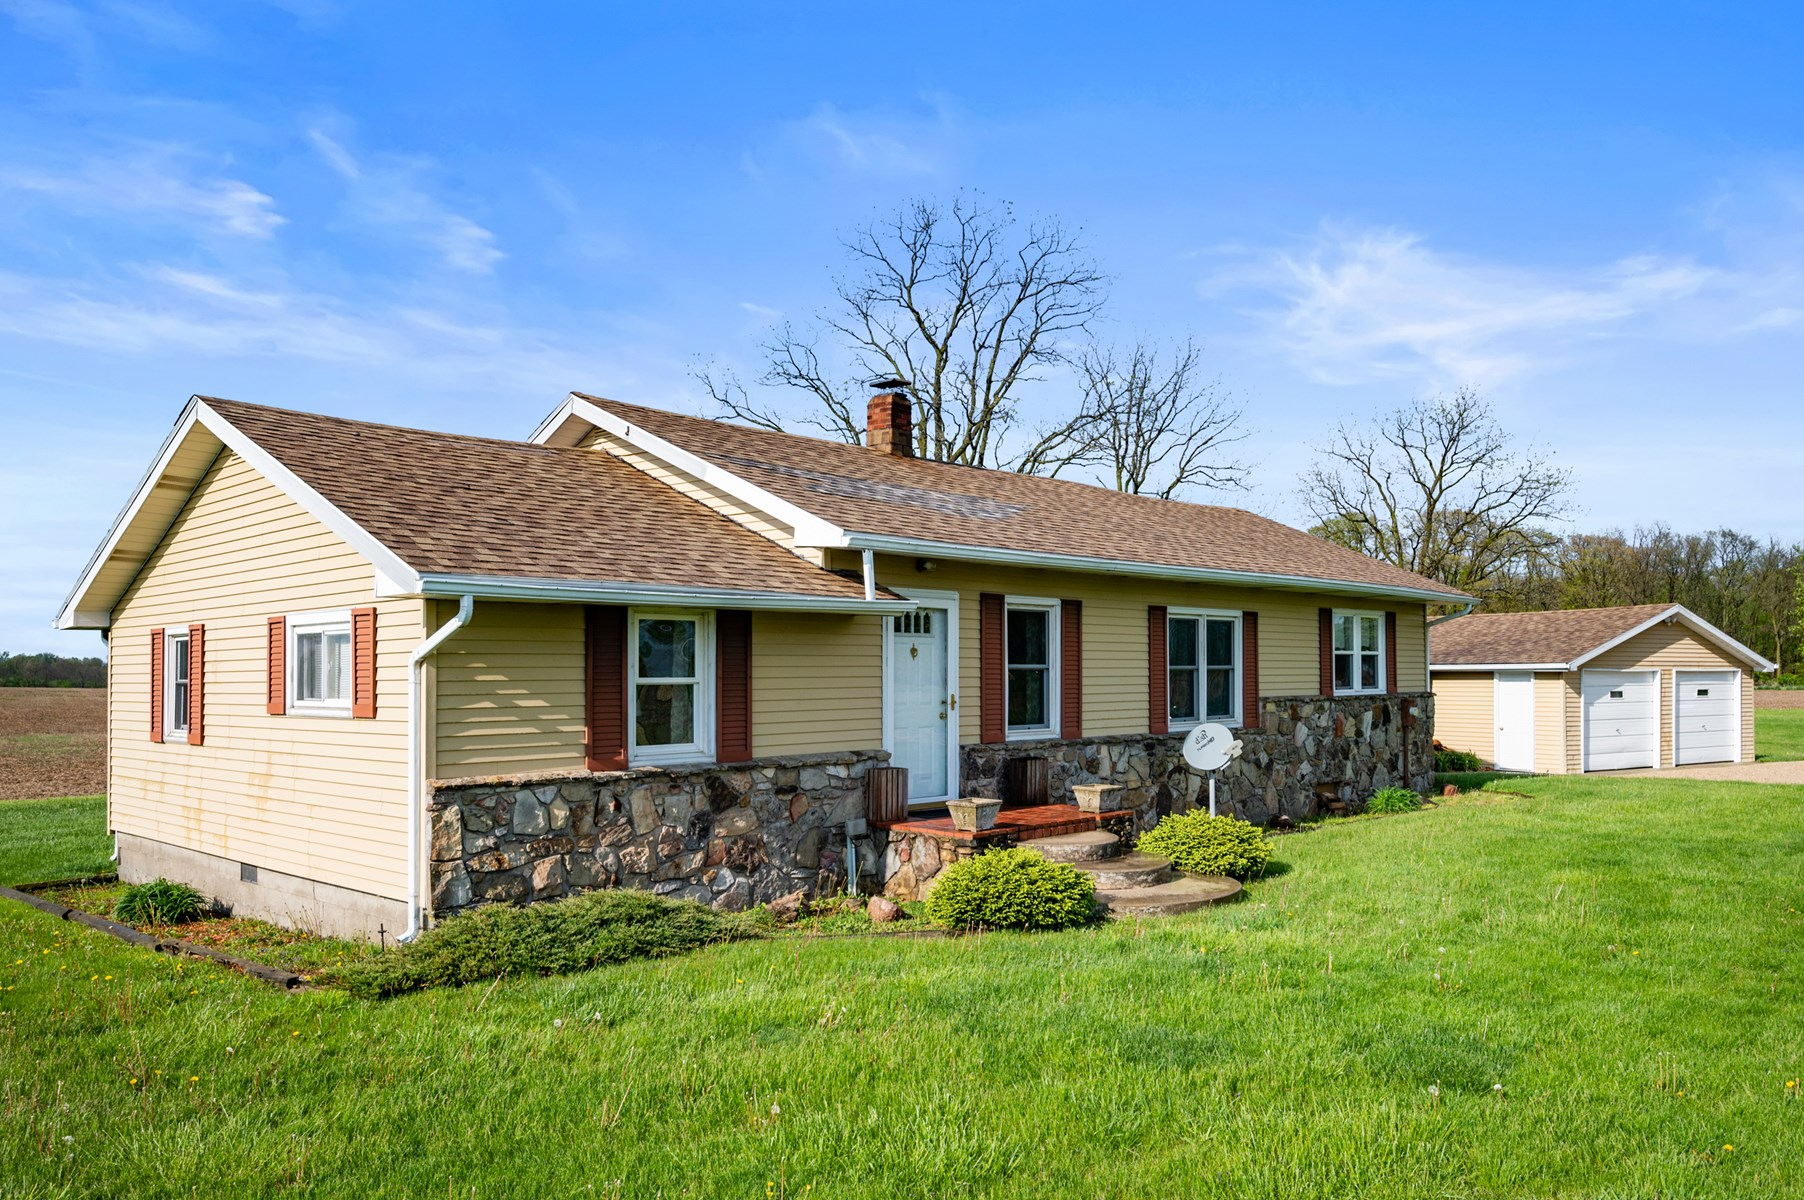 Home for Sale Selma Indiana